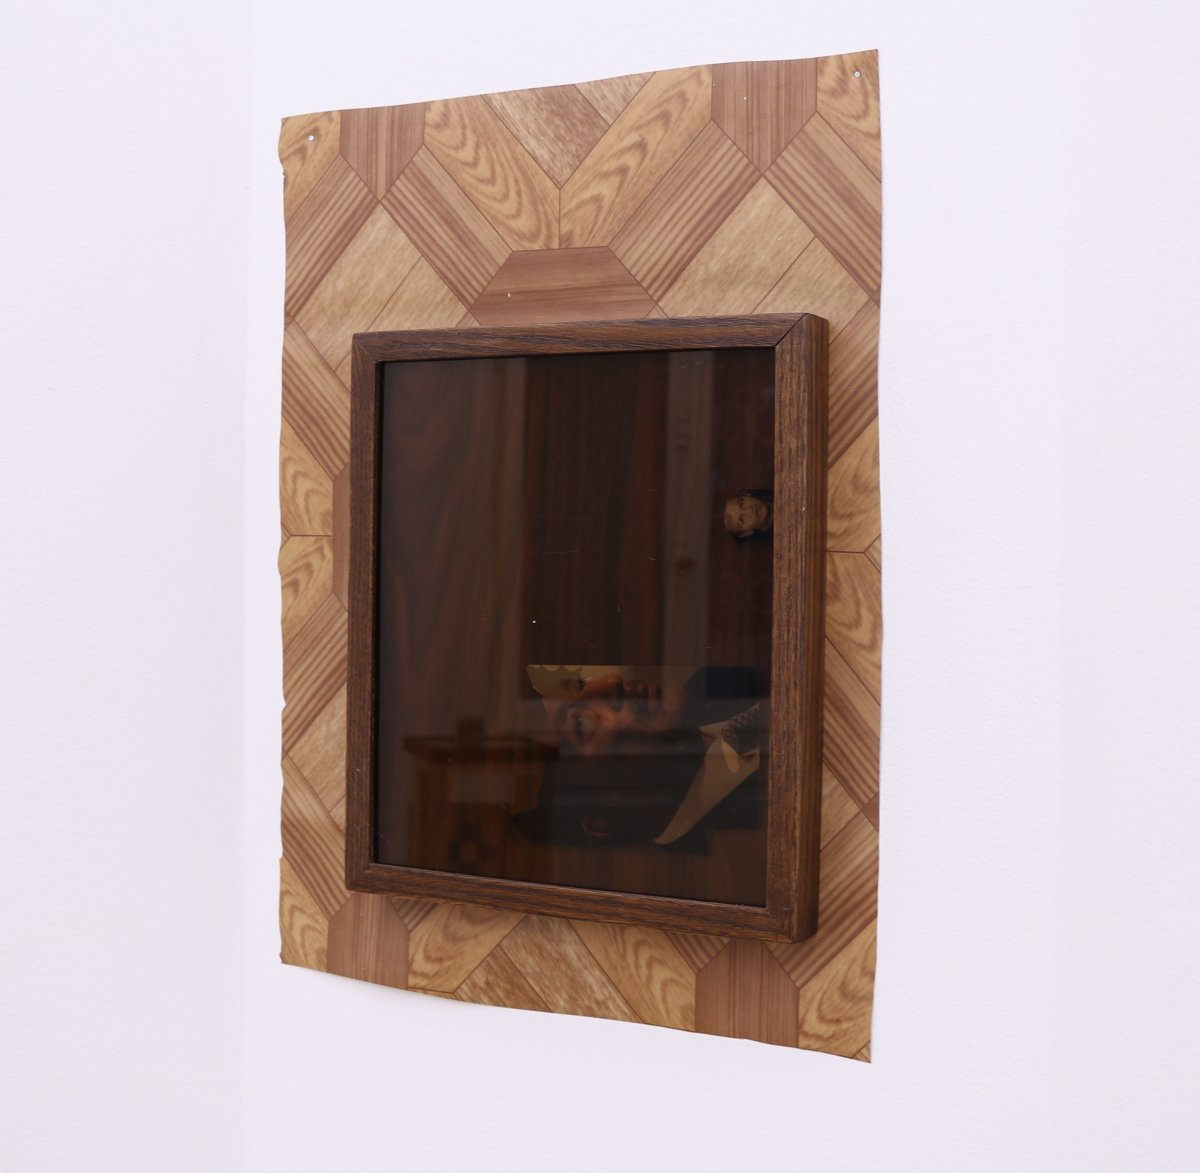 Untitled (clue), 2016, variable dimensions, PVC flooring on wall, wood frame (25 x 30 cm) with tinted glass and found photographs of uncle and Sadat, faux wood laminate backing.